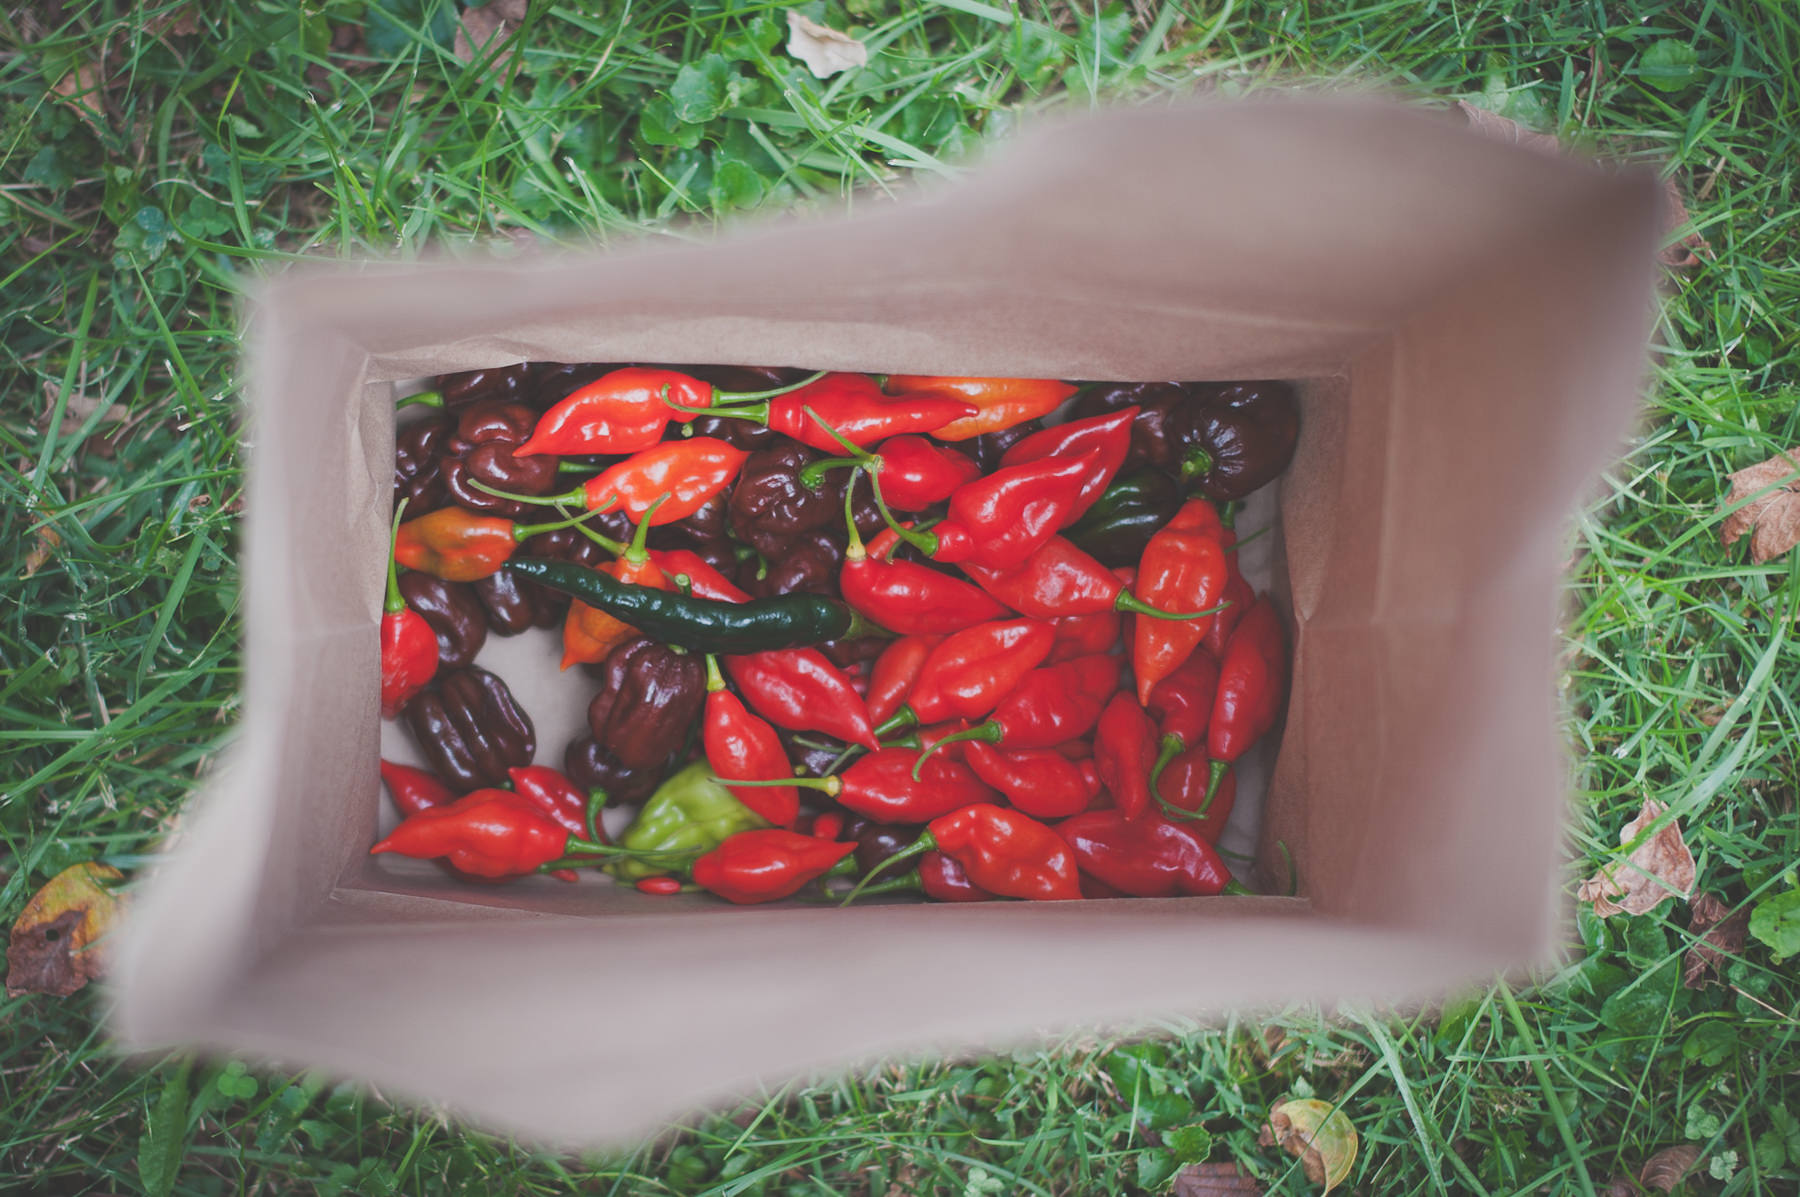 A few of the homegrown peppers that Candice and her family graced us with during our visit.